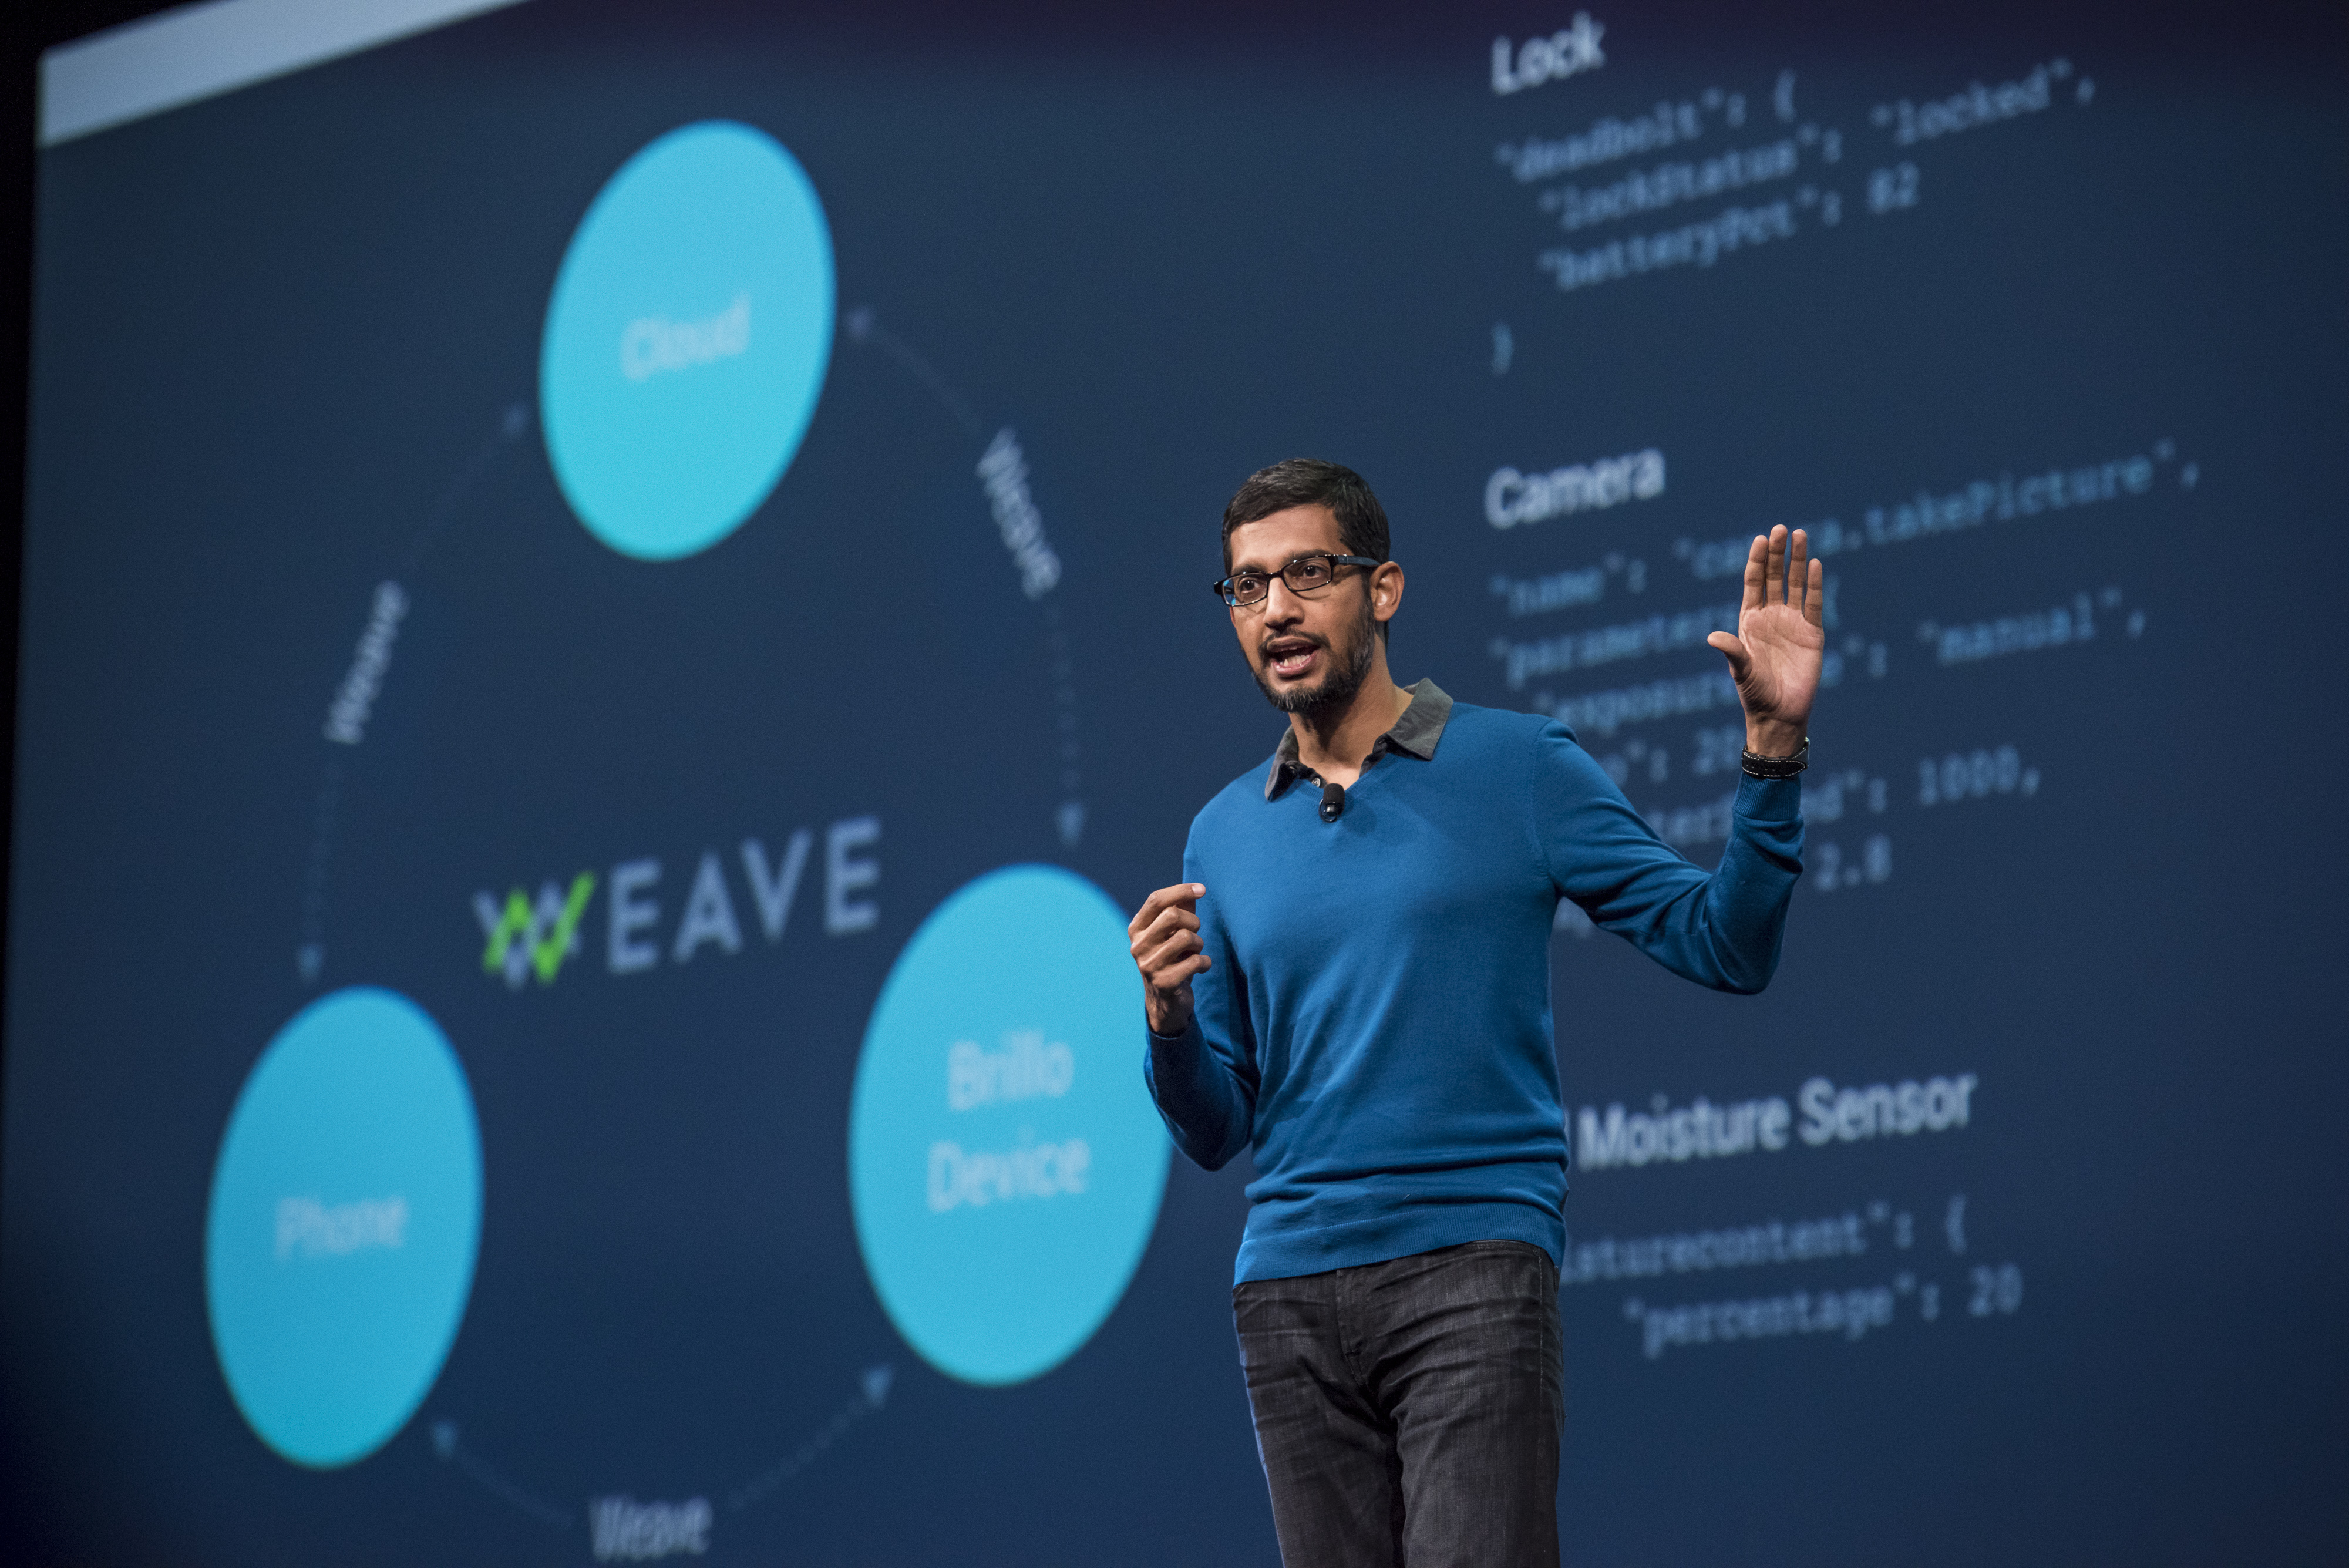 Sundar Pichai, senior vice-president of Products for Google Inc., speaks during the Google I/O Annual Developers Conference in San Francisco on May 28, 2015.